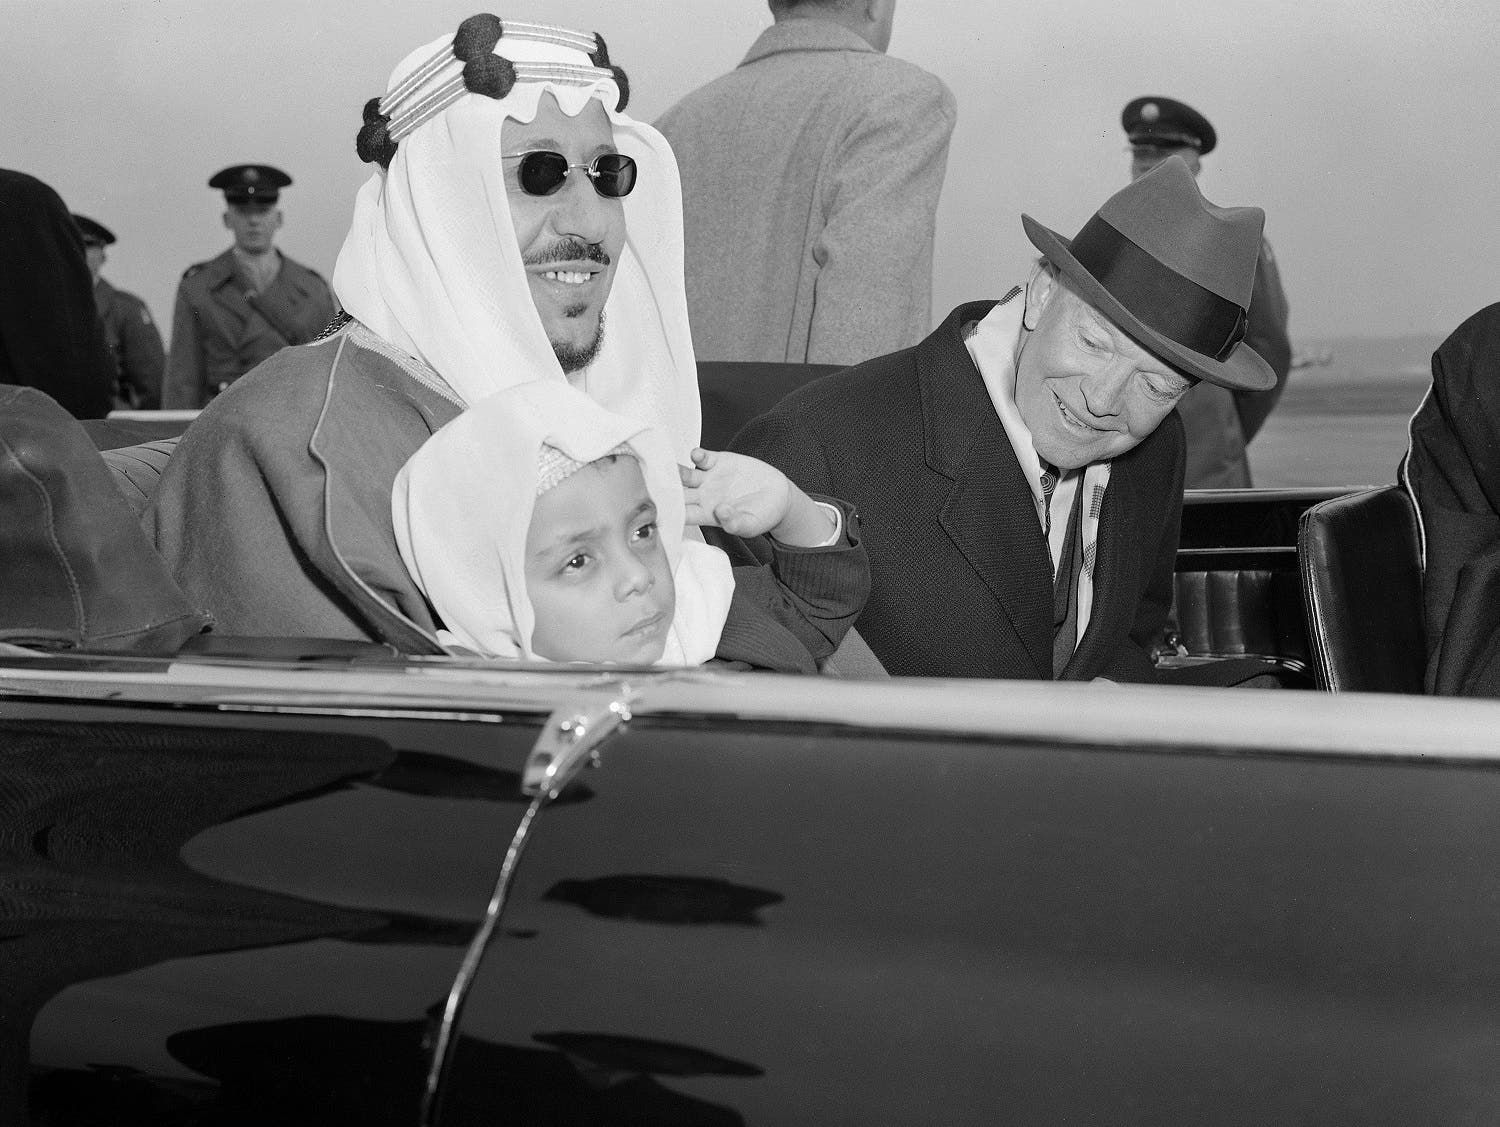 Six-year-old Prince Mashhur ibn Saud waves as he sits on the lap of his father, King Saud of Saudi Arabia, and beside President Eisenhower as they left National Airport, January 30, 1957 (File Photo: AP)